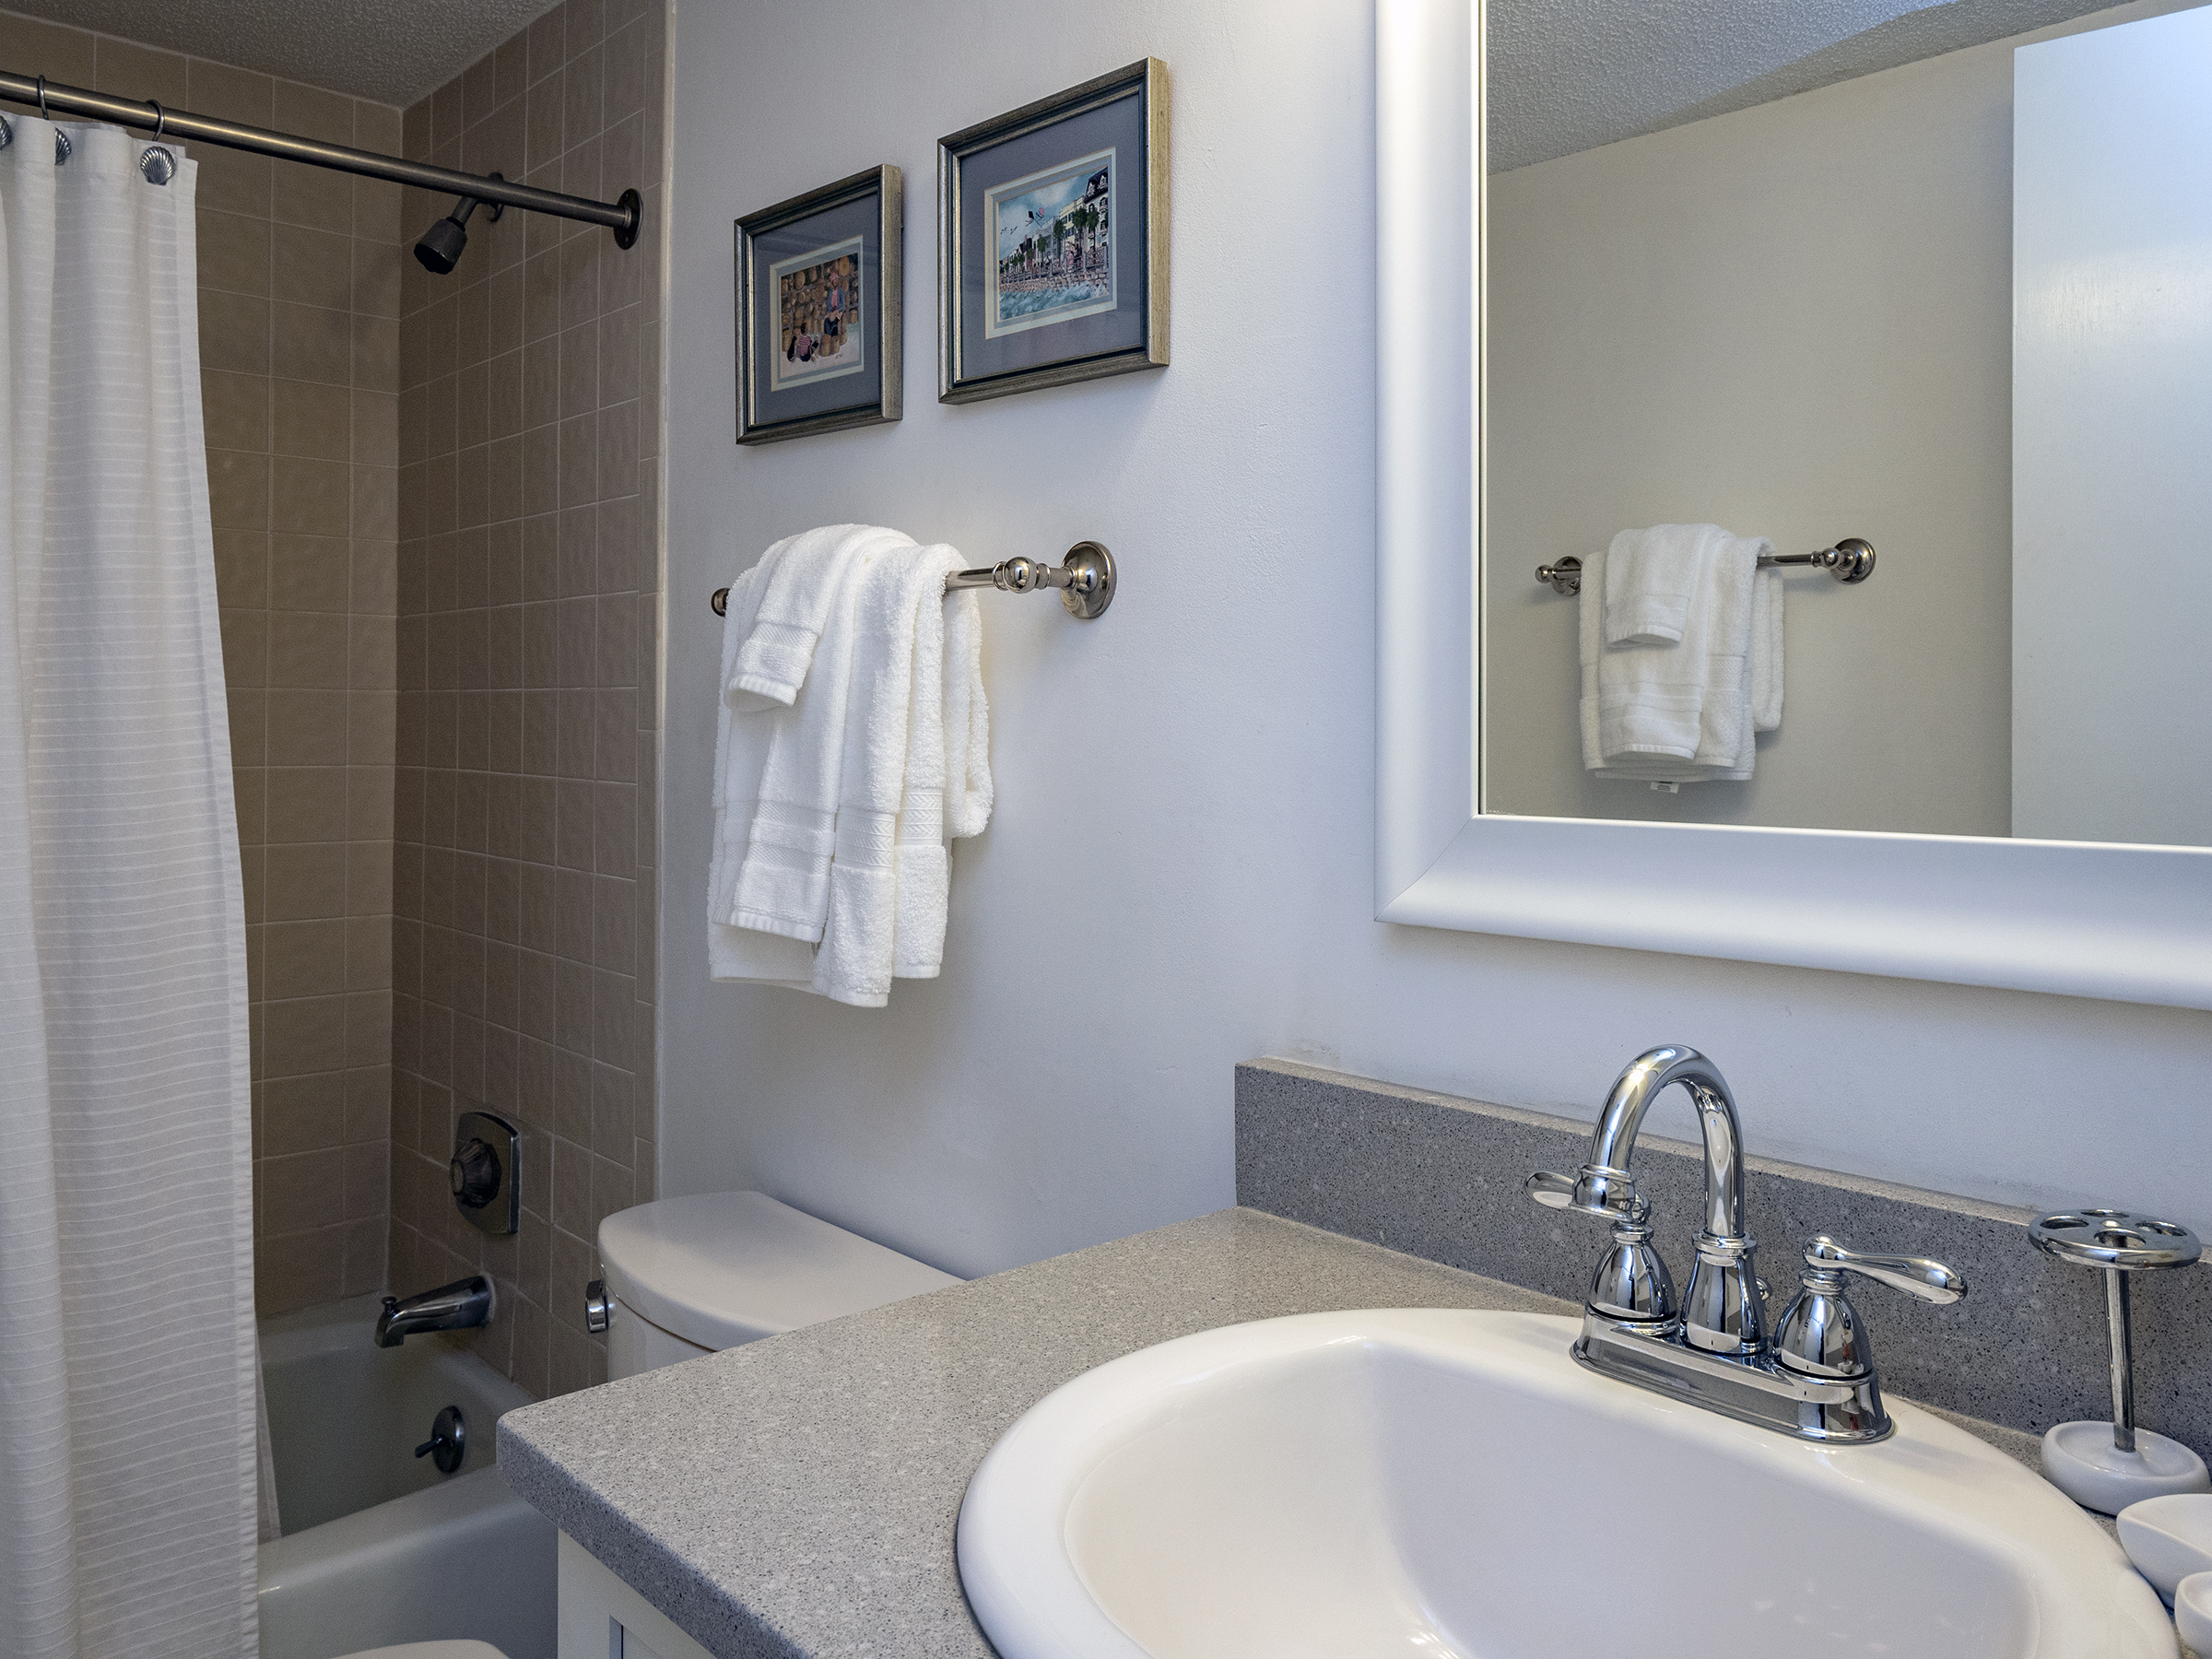 Hall access full bathroom with tub/shower combo